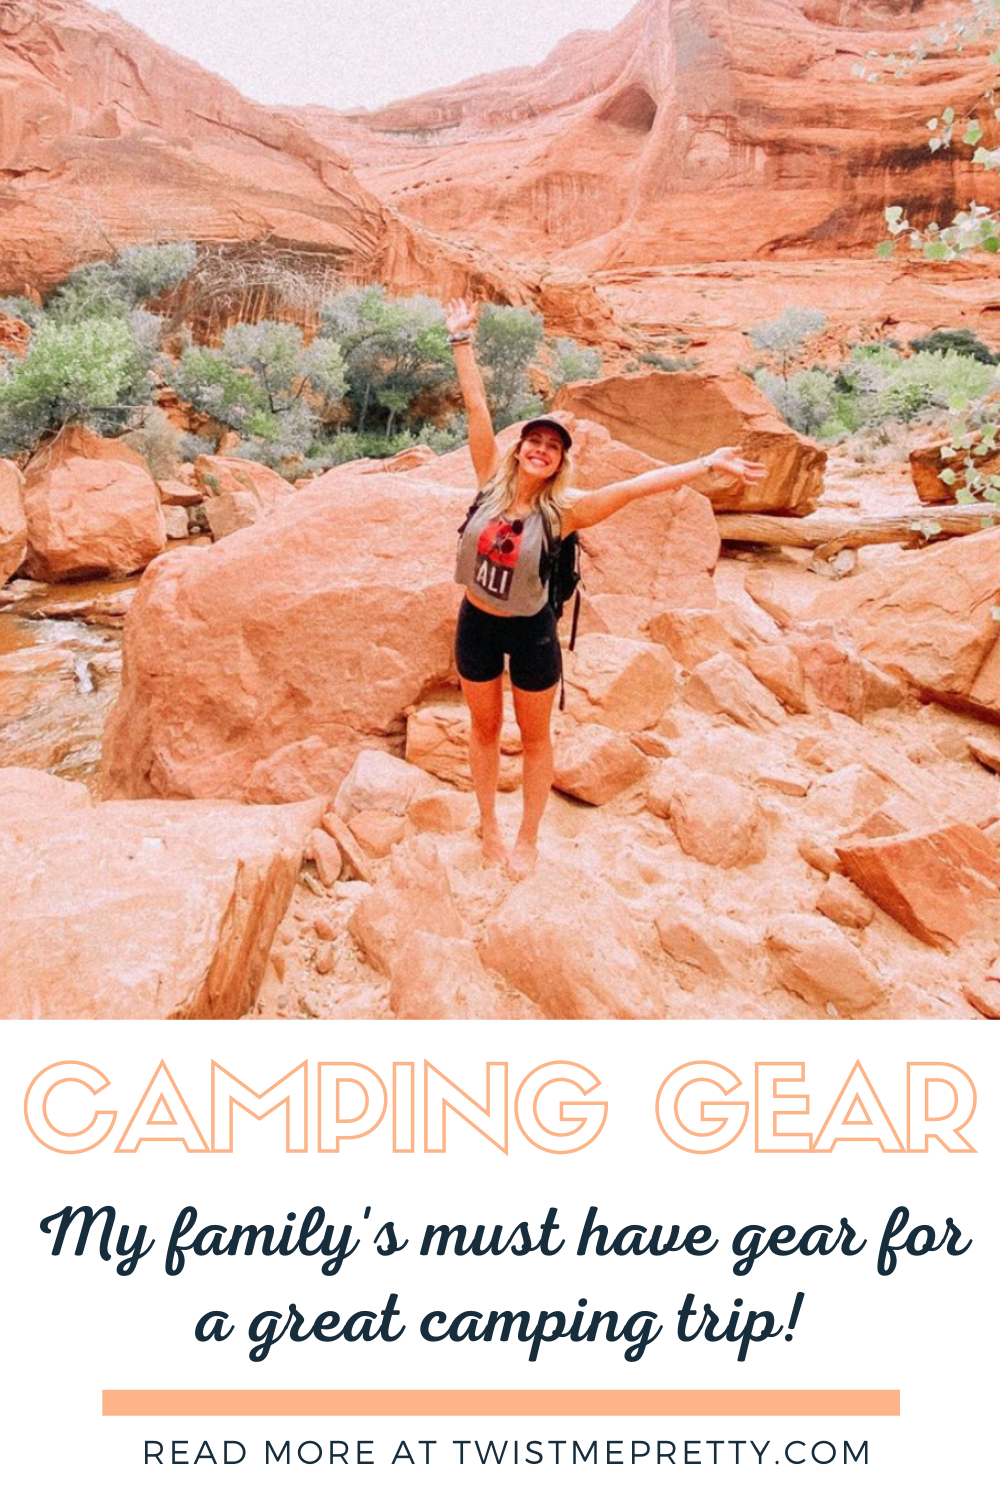 Camping Gear- My family's must haves for a great camping trip. www.twistmepretty.com